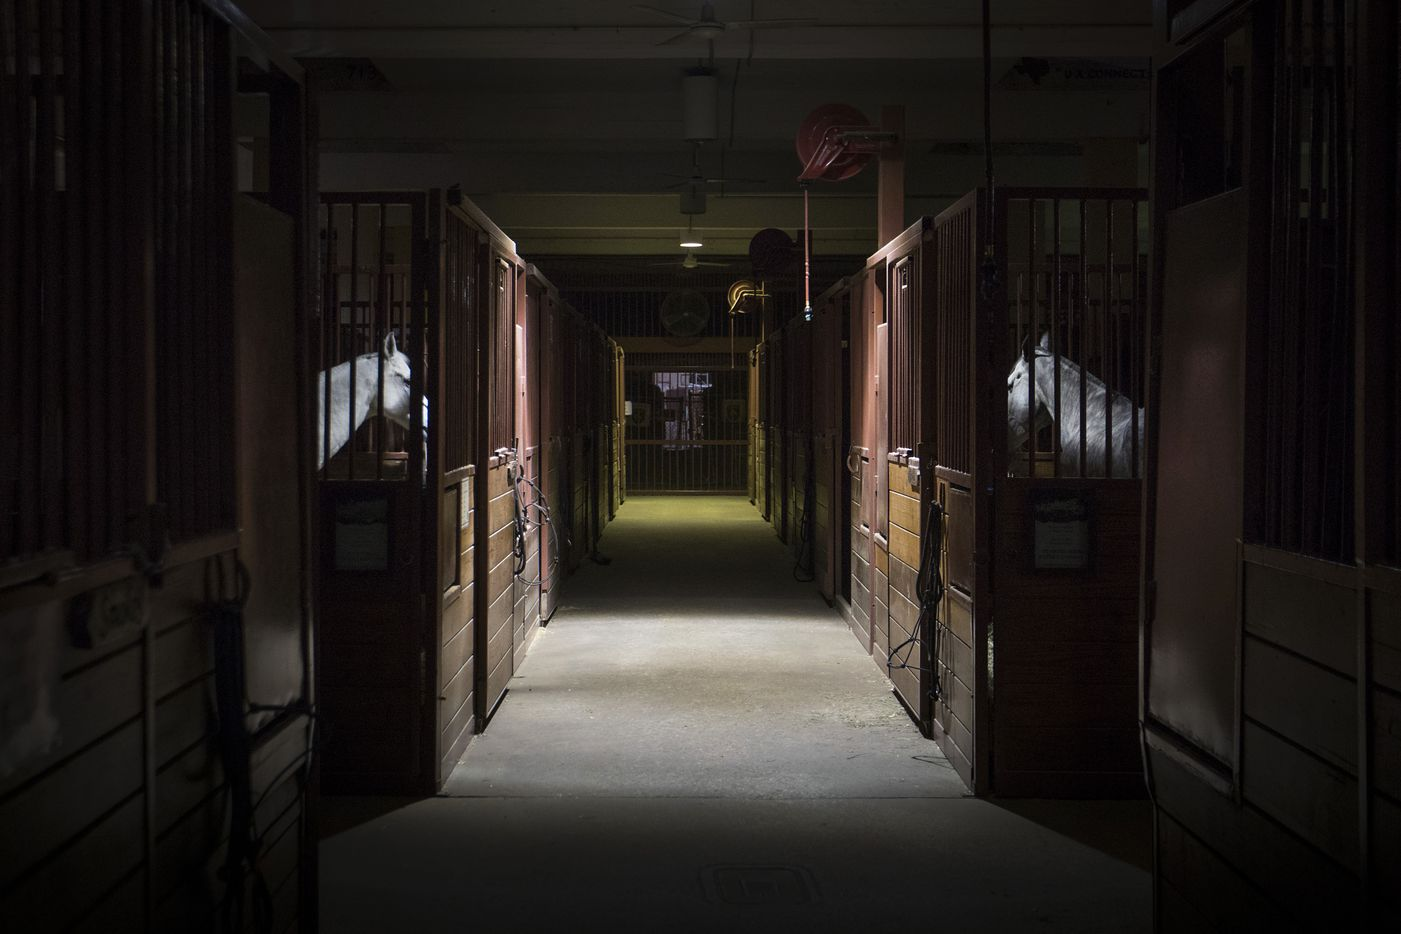 Horses are seen in darkened stables at the State Fair of Texas.